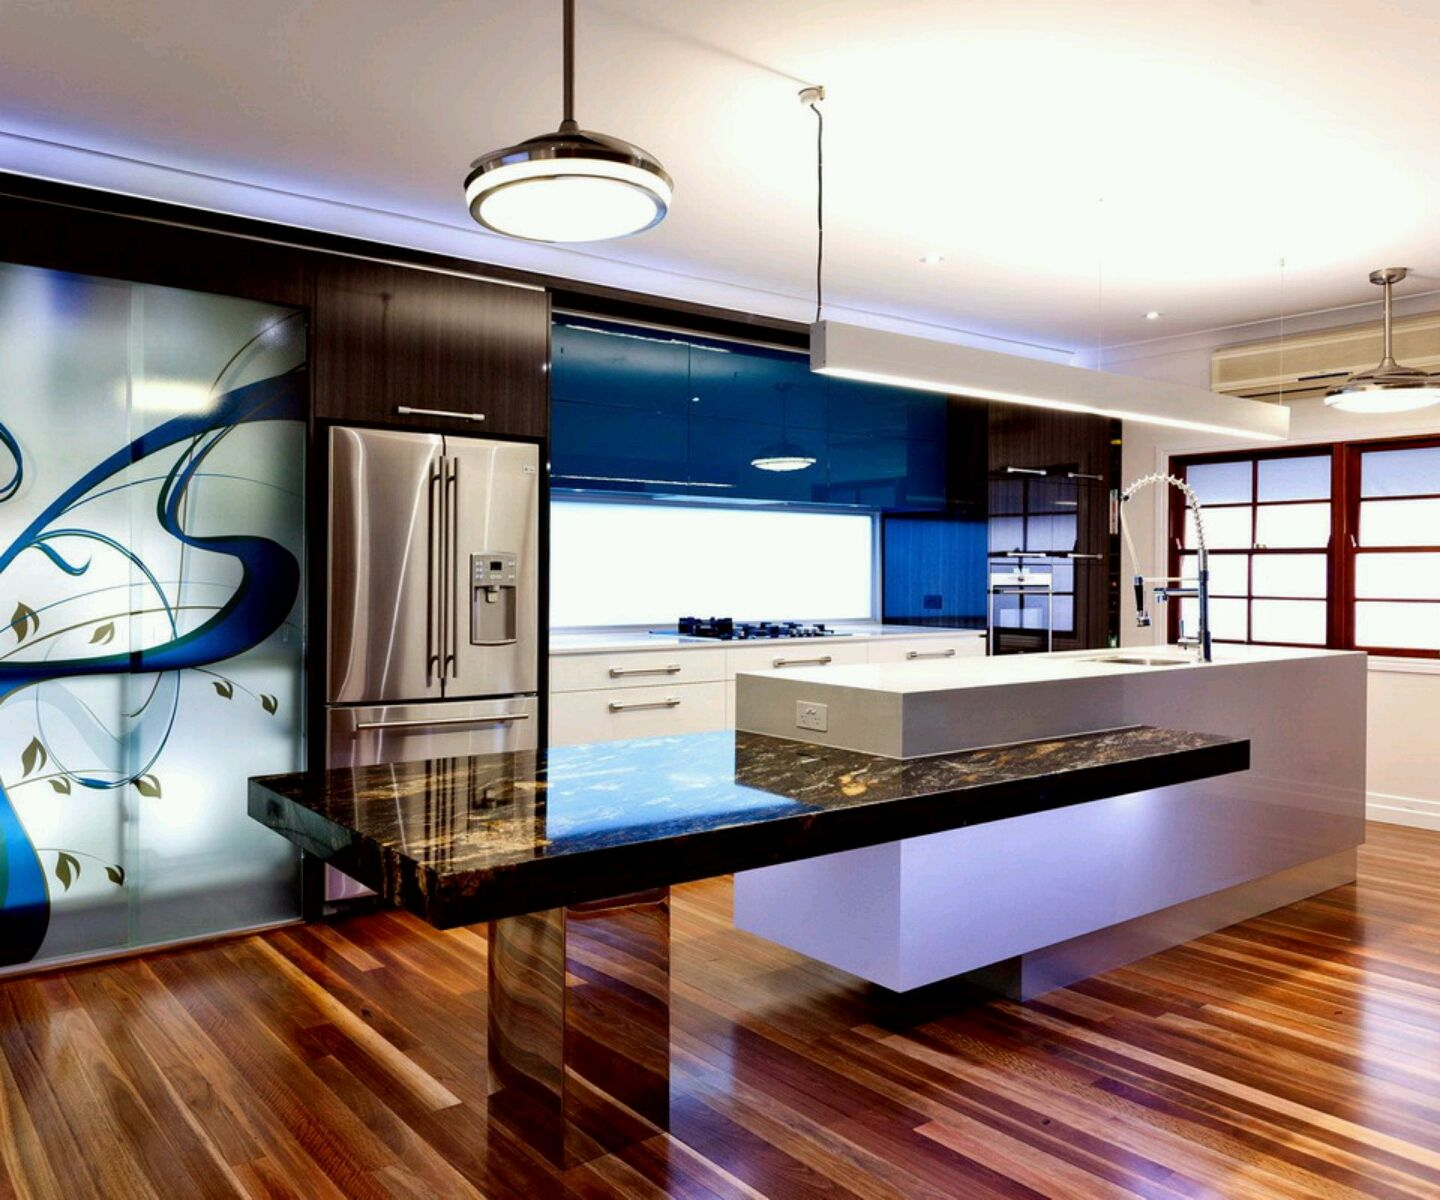 Kitchen Ideas 2013 25 Kitchen Design Inspiration Ideas  Contemporary Kitchen